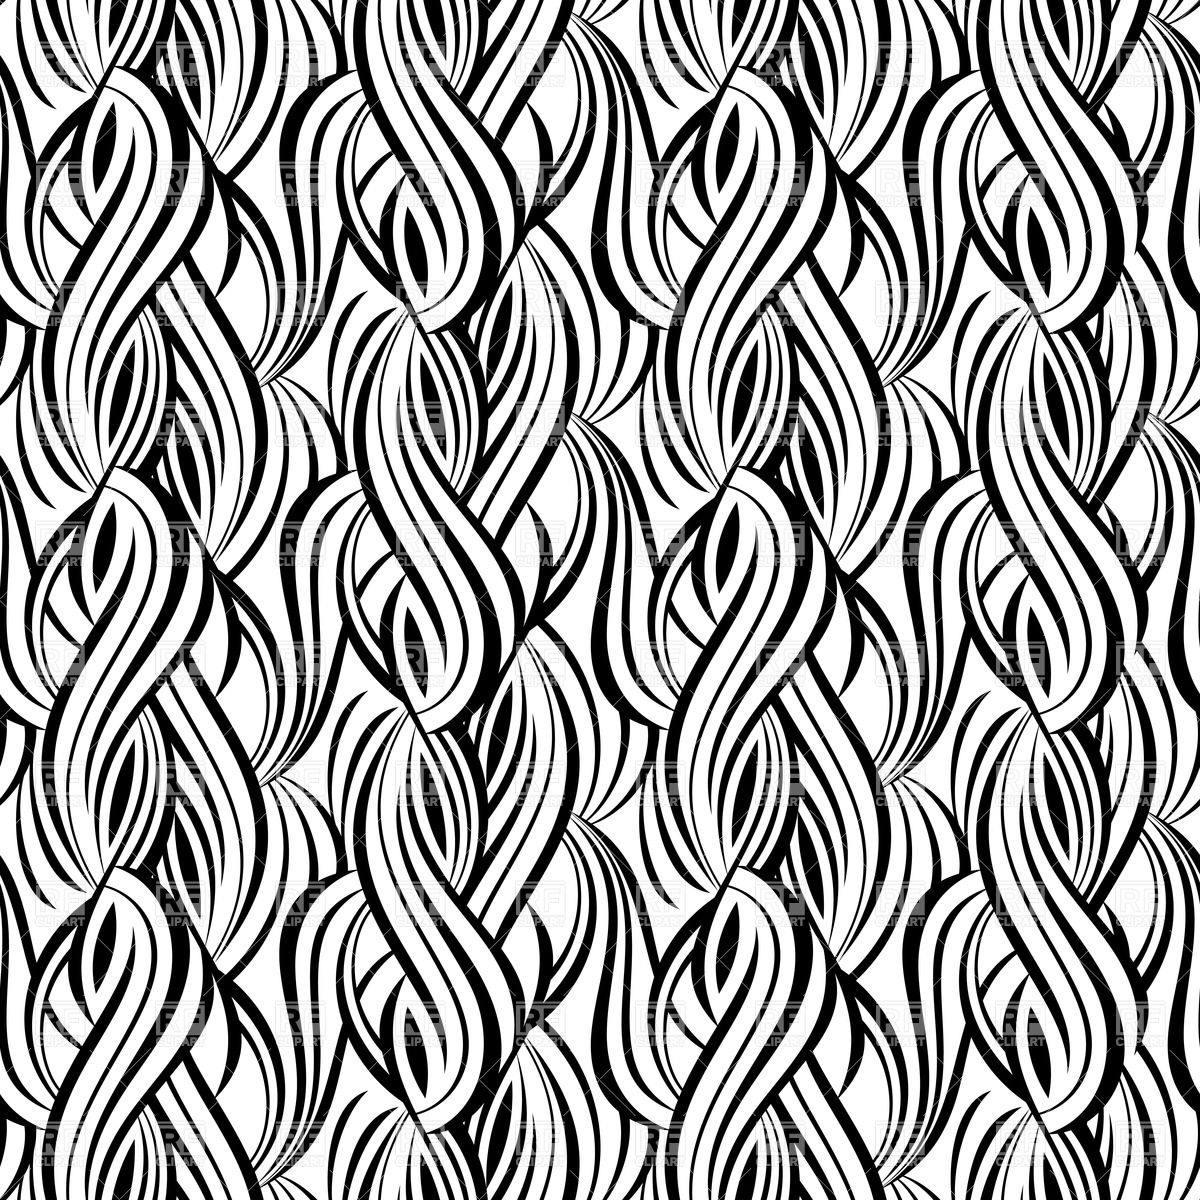 1200x1200 Black And White Wavy Pattern Vector Image Vector Artwork Of